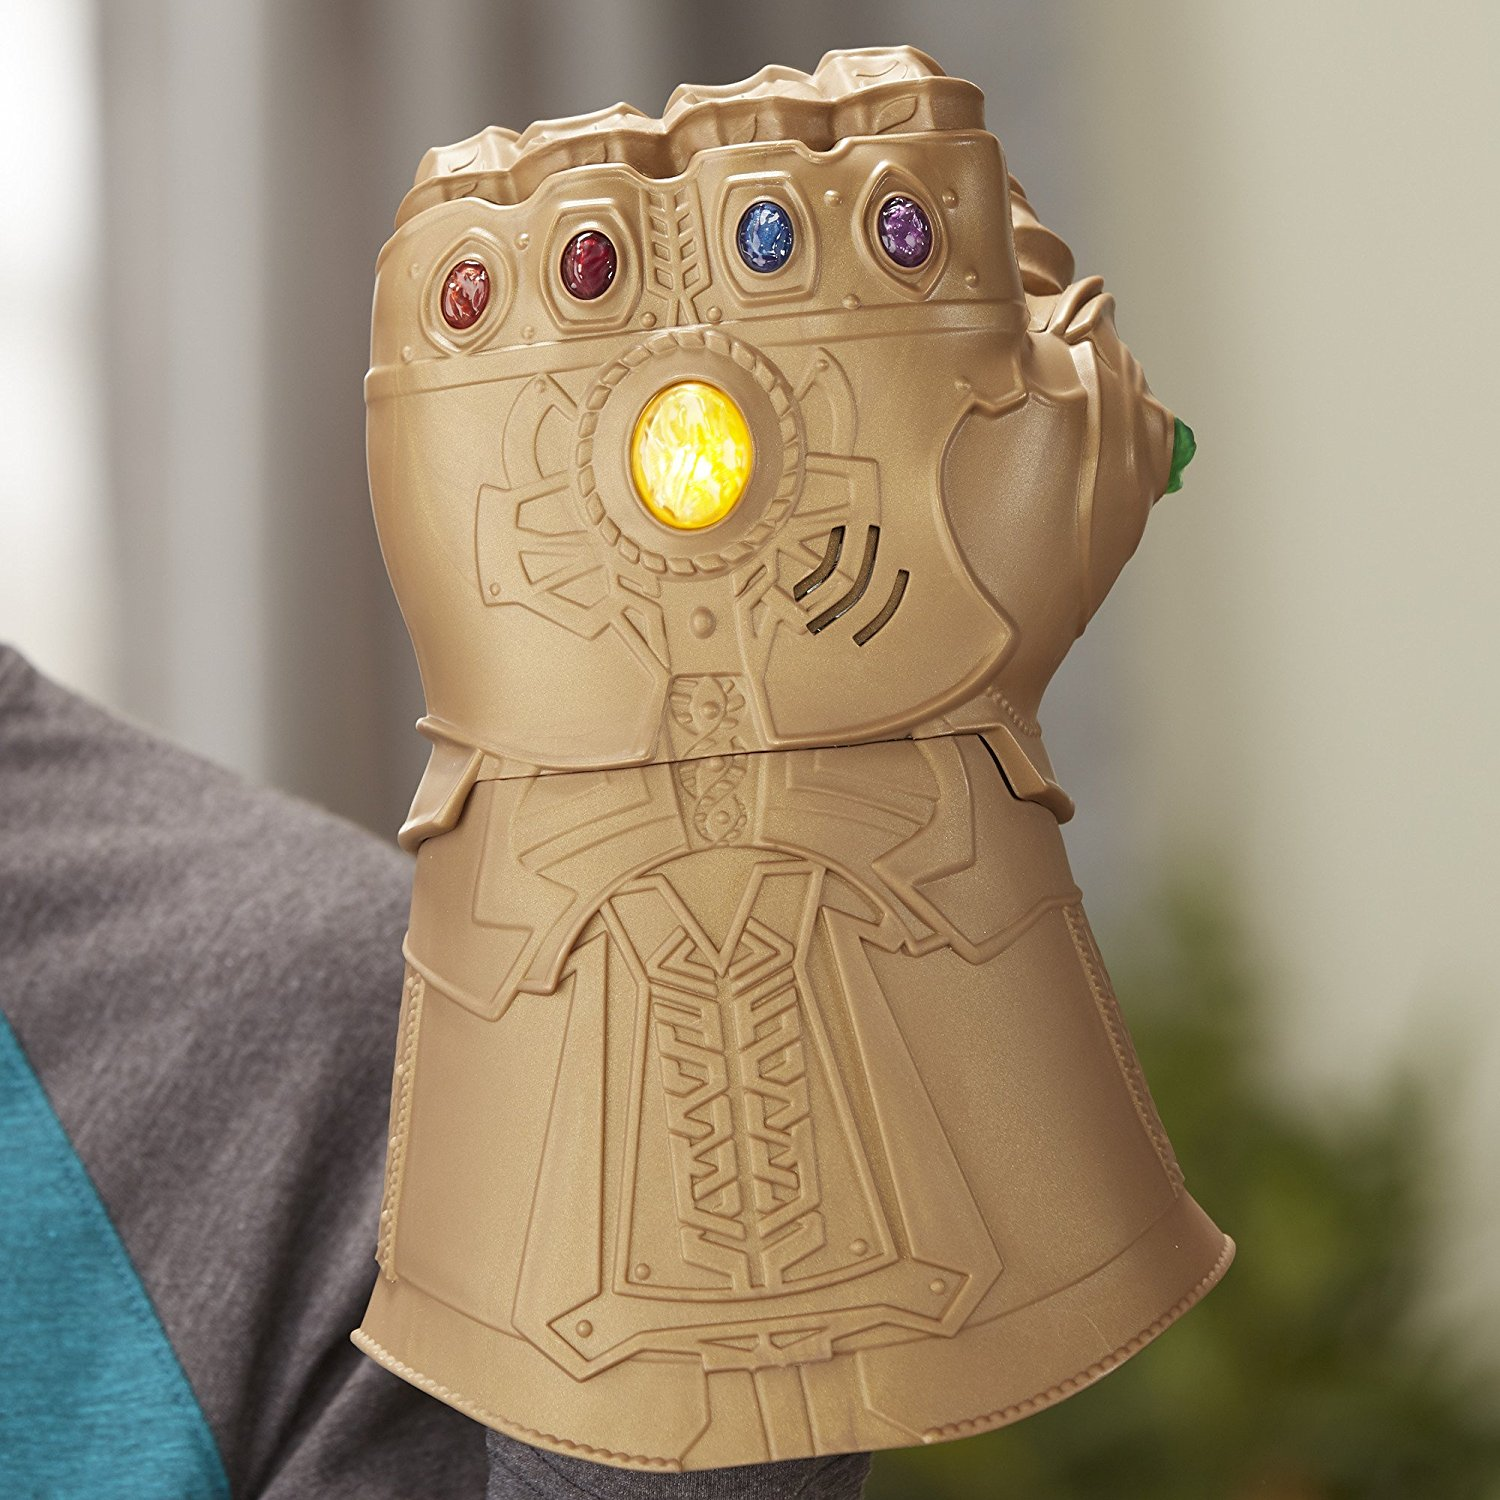 Avengers Infinity War merchandise, Thanos gauntlet with Infinity stones